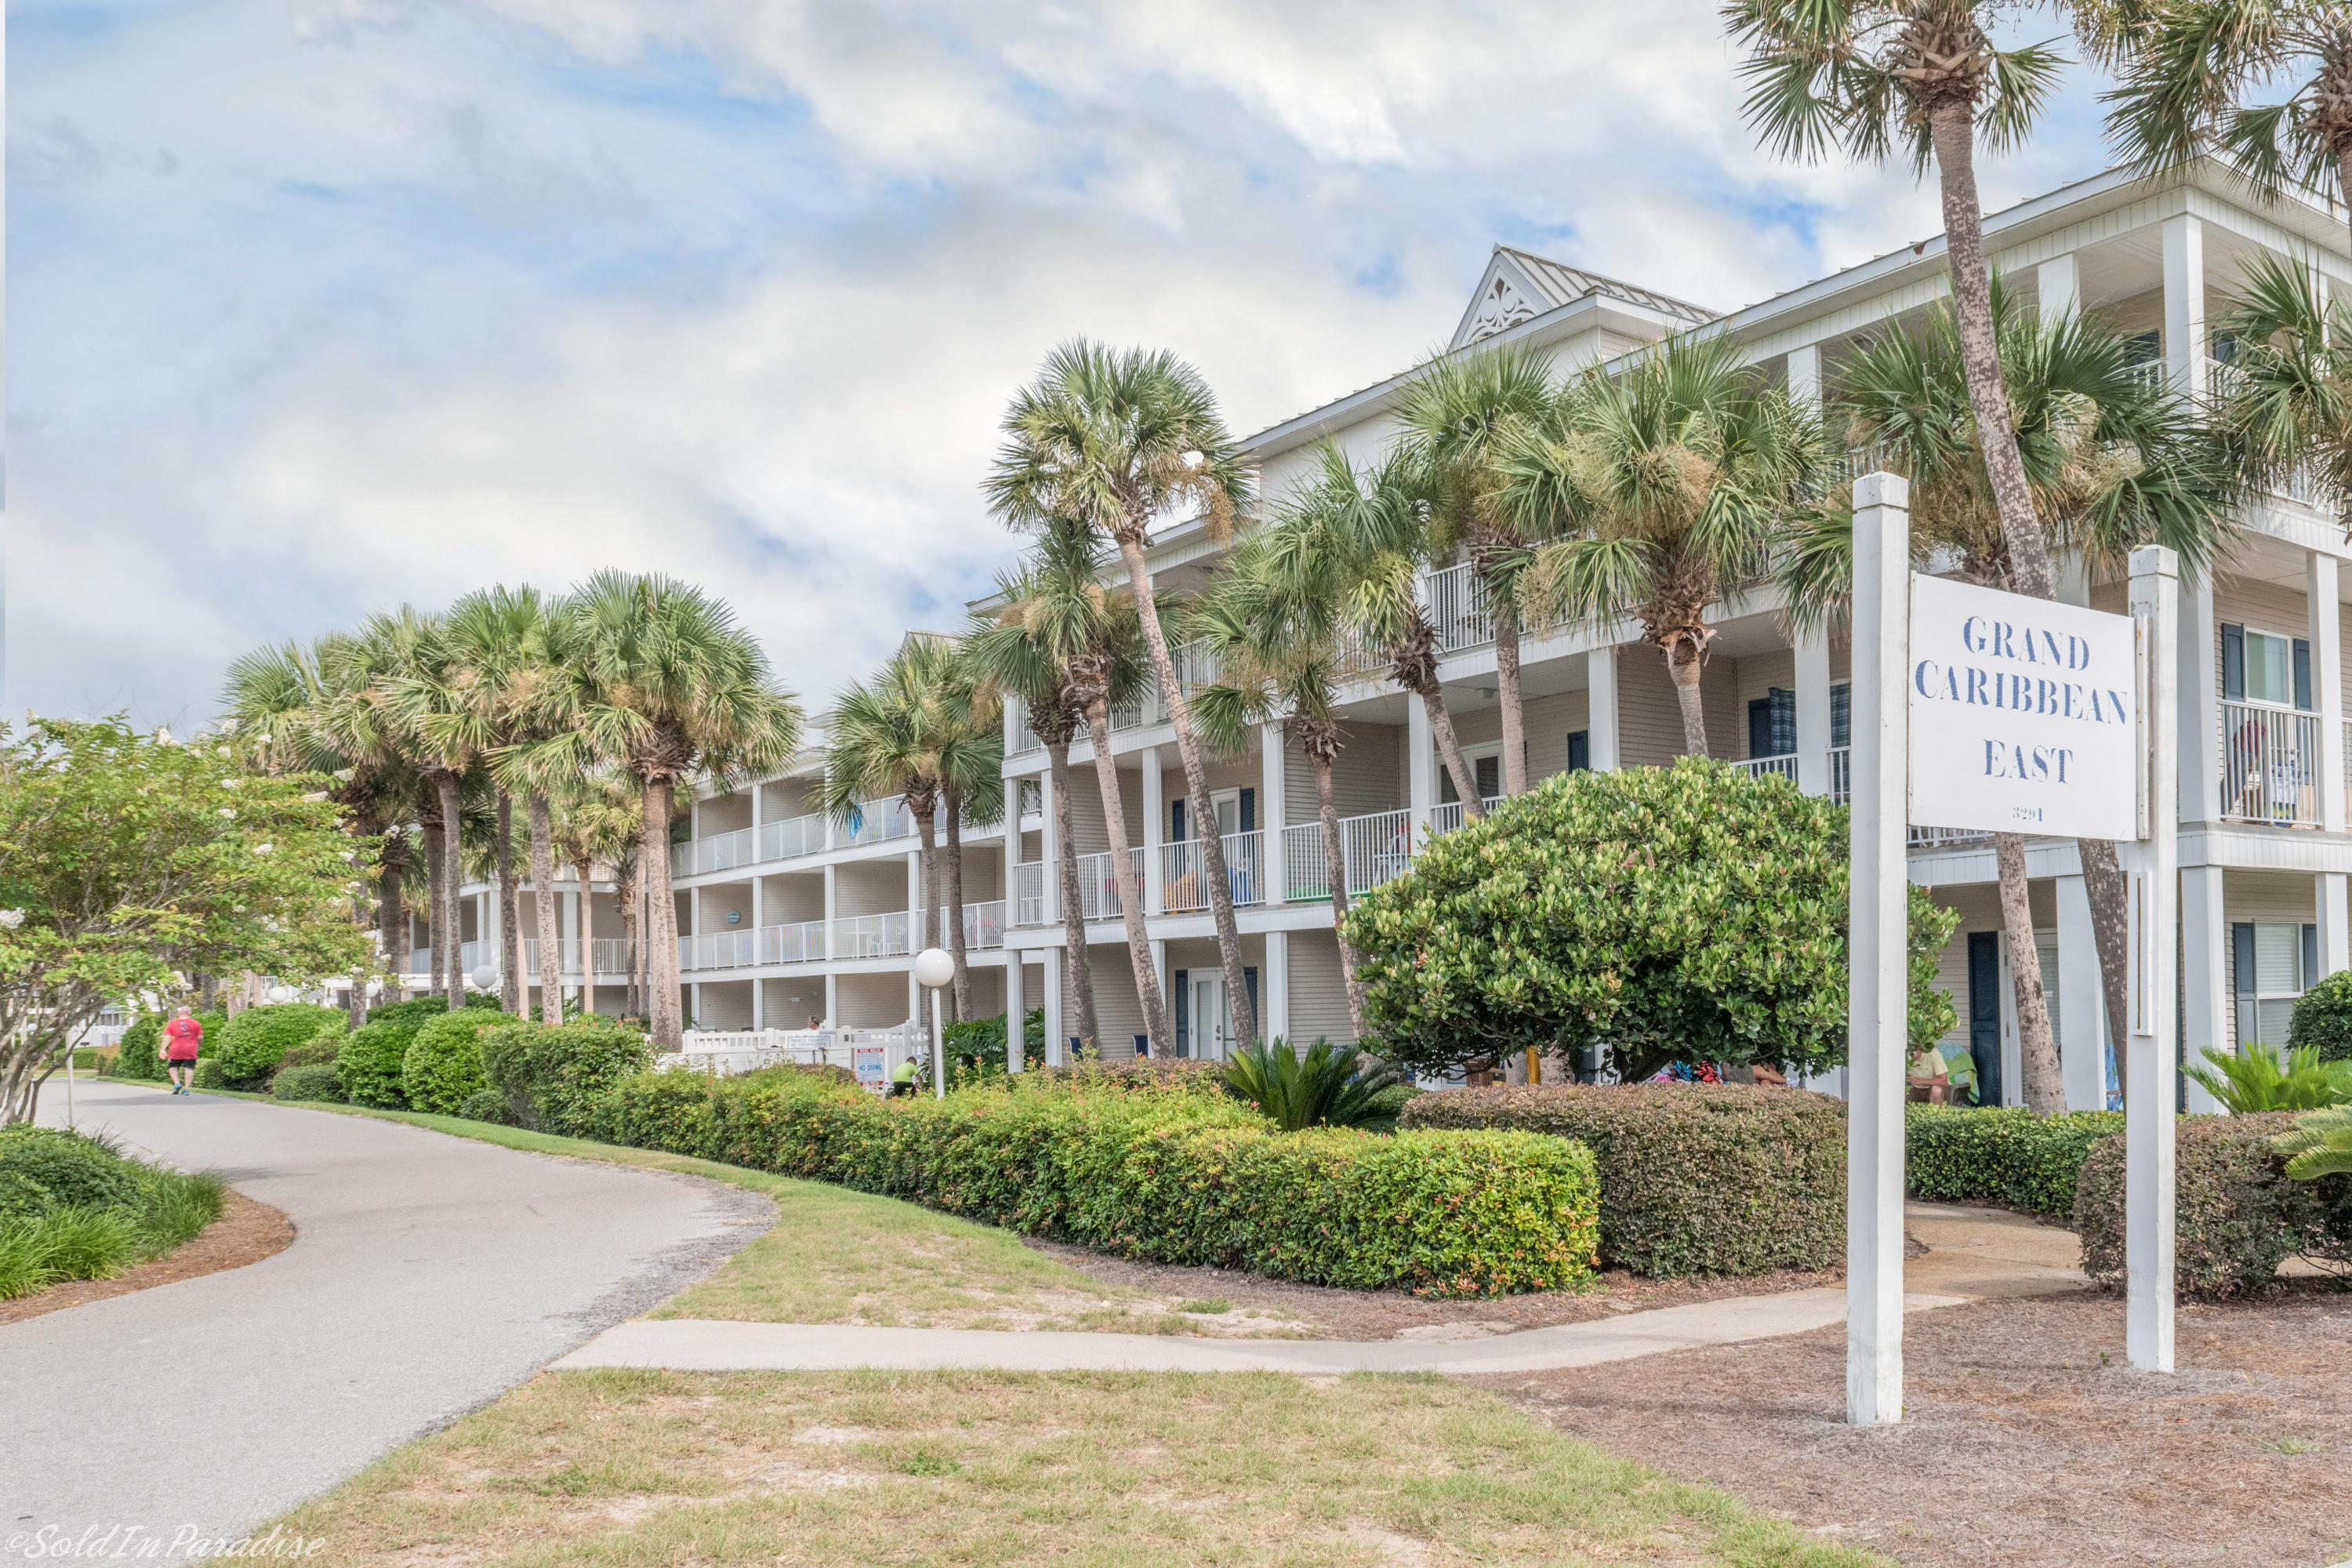 This first floor unit is located in Grand Caribbean East - a three-story property settled in the quiet and desirable Crystal Beach area of Destin. This upgraded one bedroom one bath unit features tile flooring throughout, built-in hallway bunks, open main living areas, and sizeable patio with direct pool access - the perfect place to take in the salty sea breeze. Additional amenities include well-kept grounds, grilling and picnic area, and large private parking lot. The beaches and beautiful emerald green waters of the Gulf are easily accessed by two dedicated walkways directly across the street. Grand Caribbean East is also within minutes of the many great shopping and restaurants Destin has to offer. Simply paradise. 2018 Gross Rental Income: $22,036.